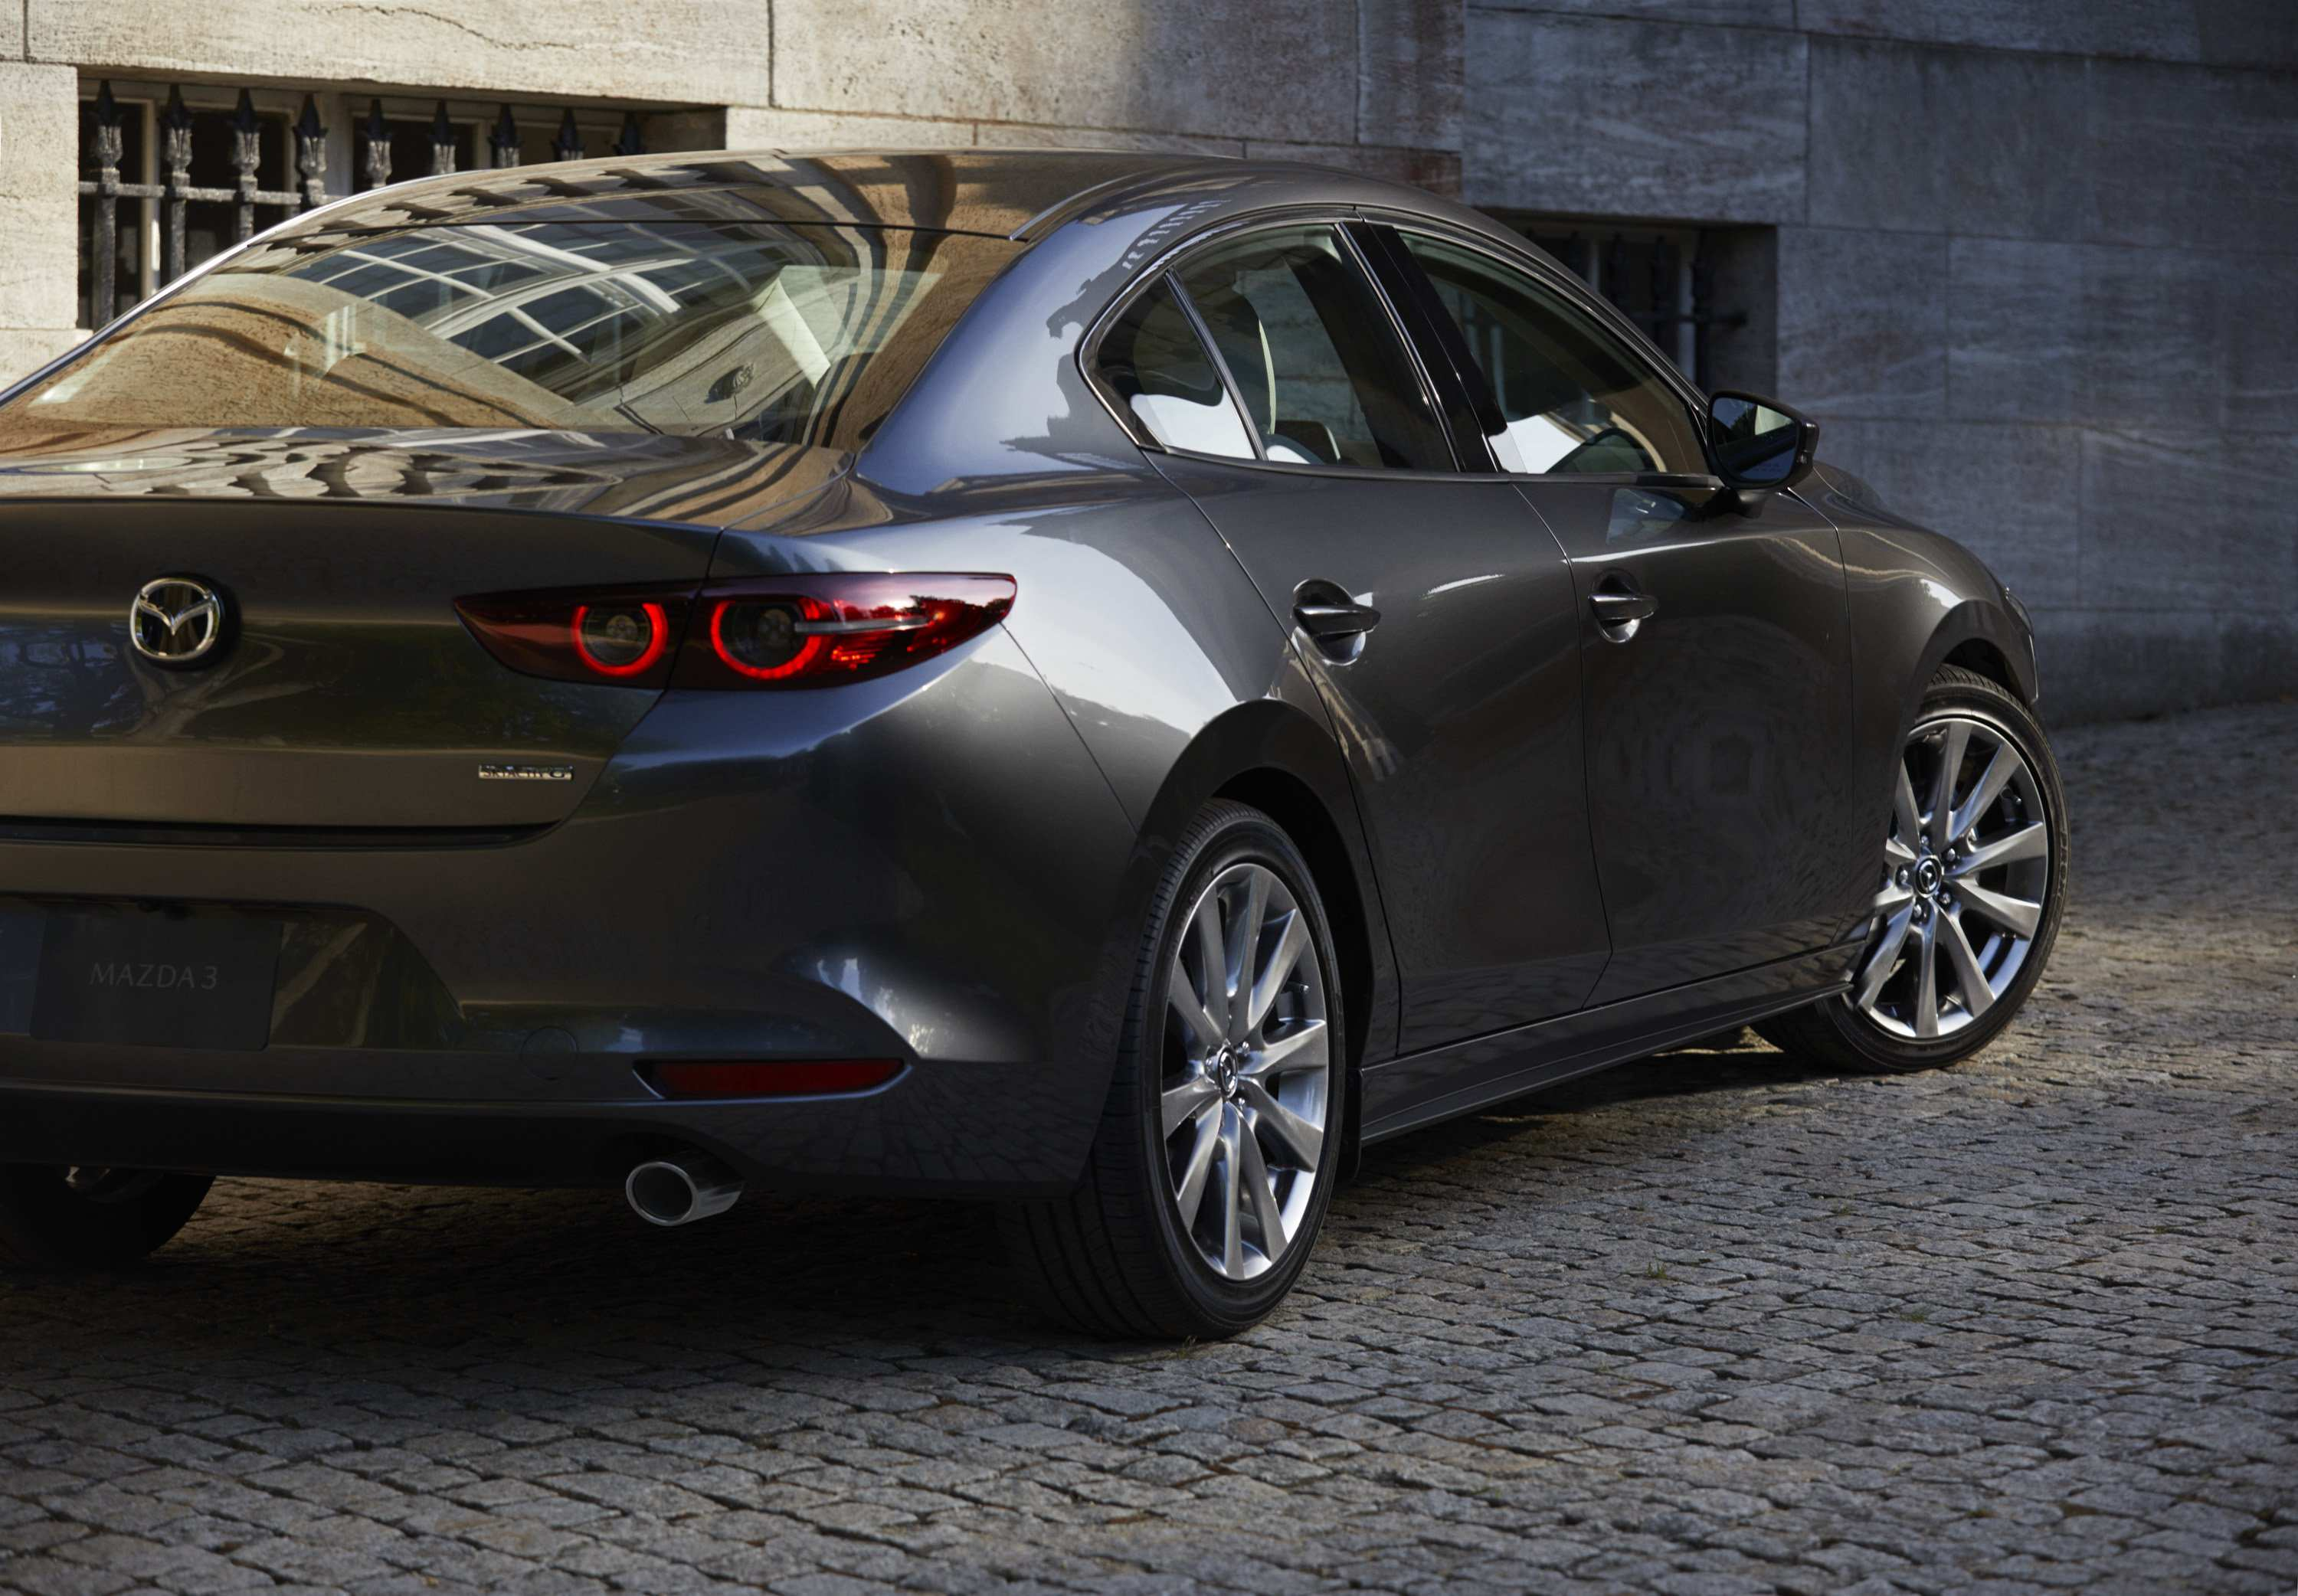 31 The Best 2019 Mazda 3 Sedan Price Design And Review